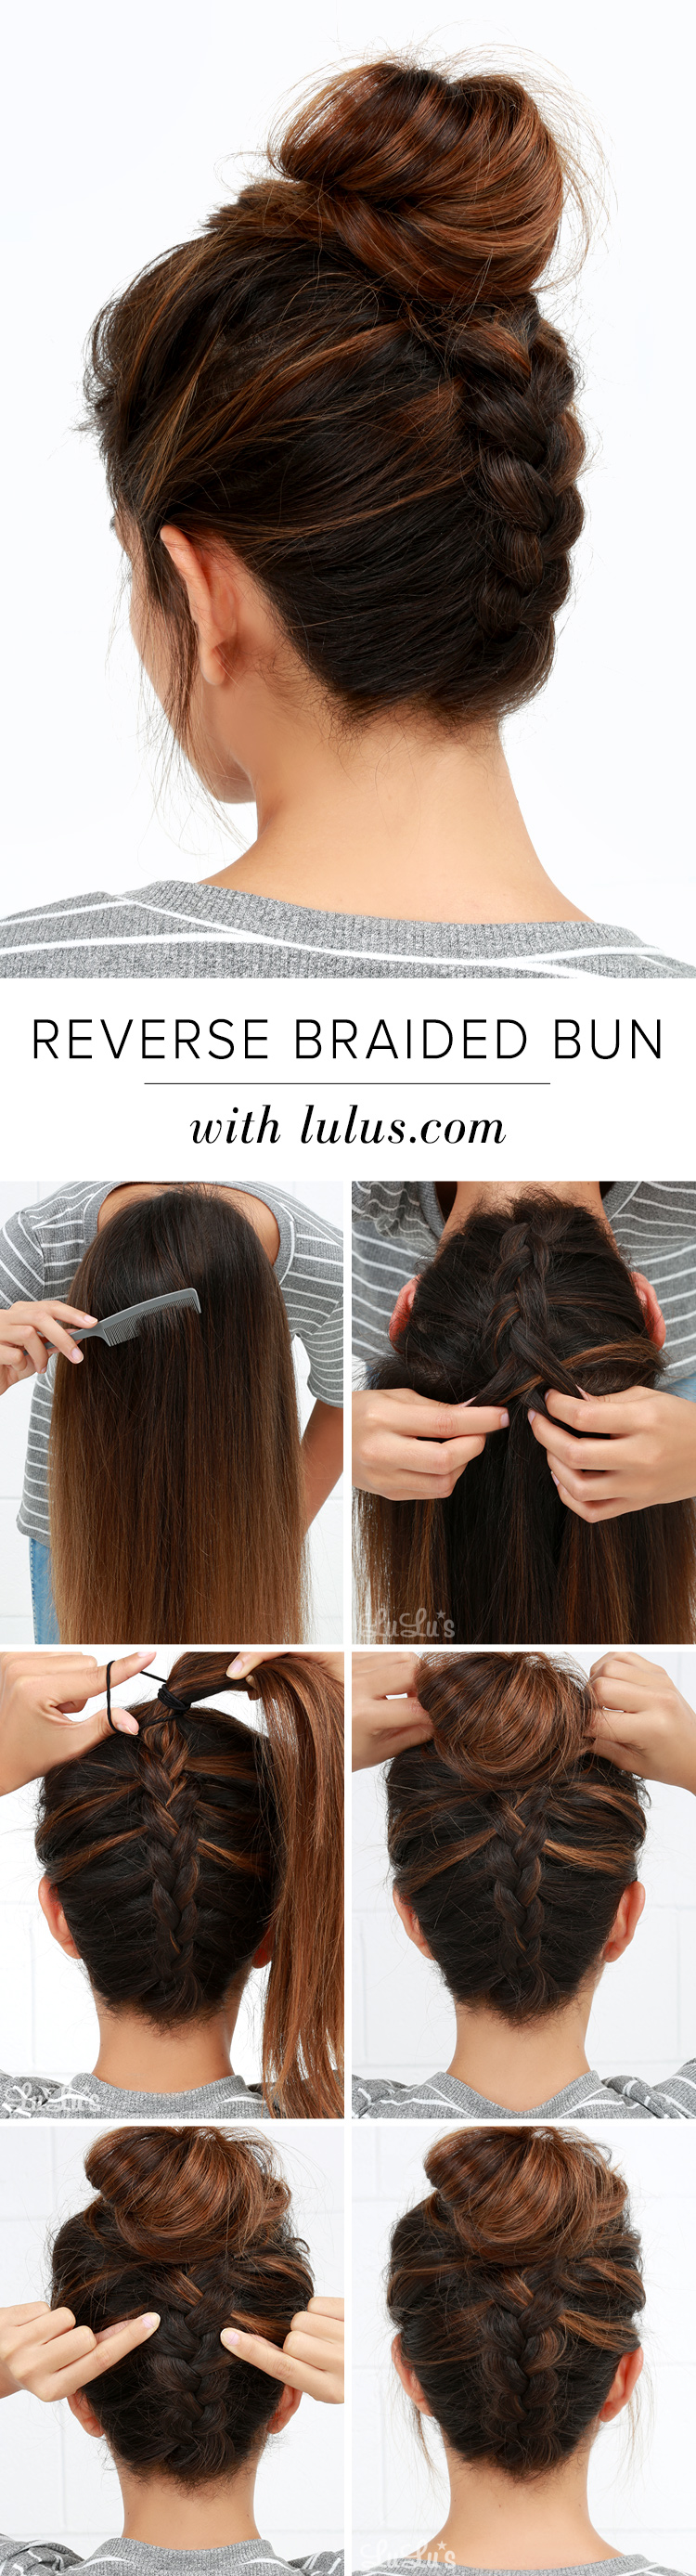 Reverse braid messy bun